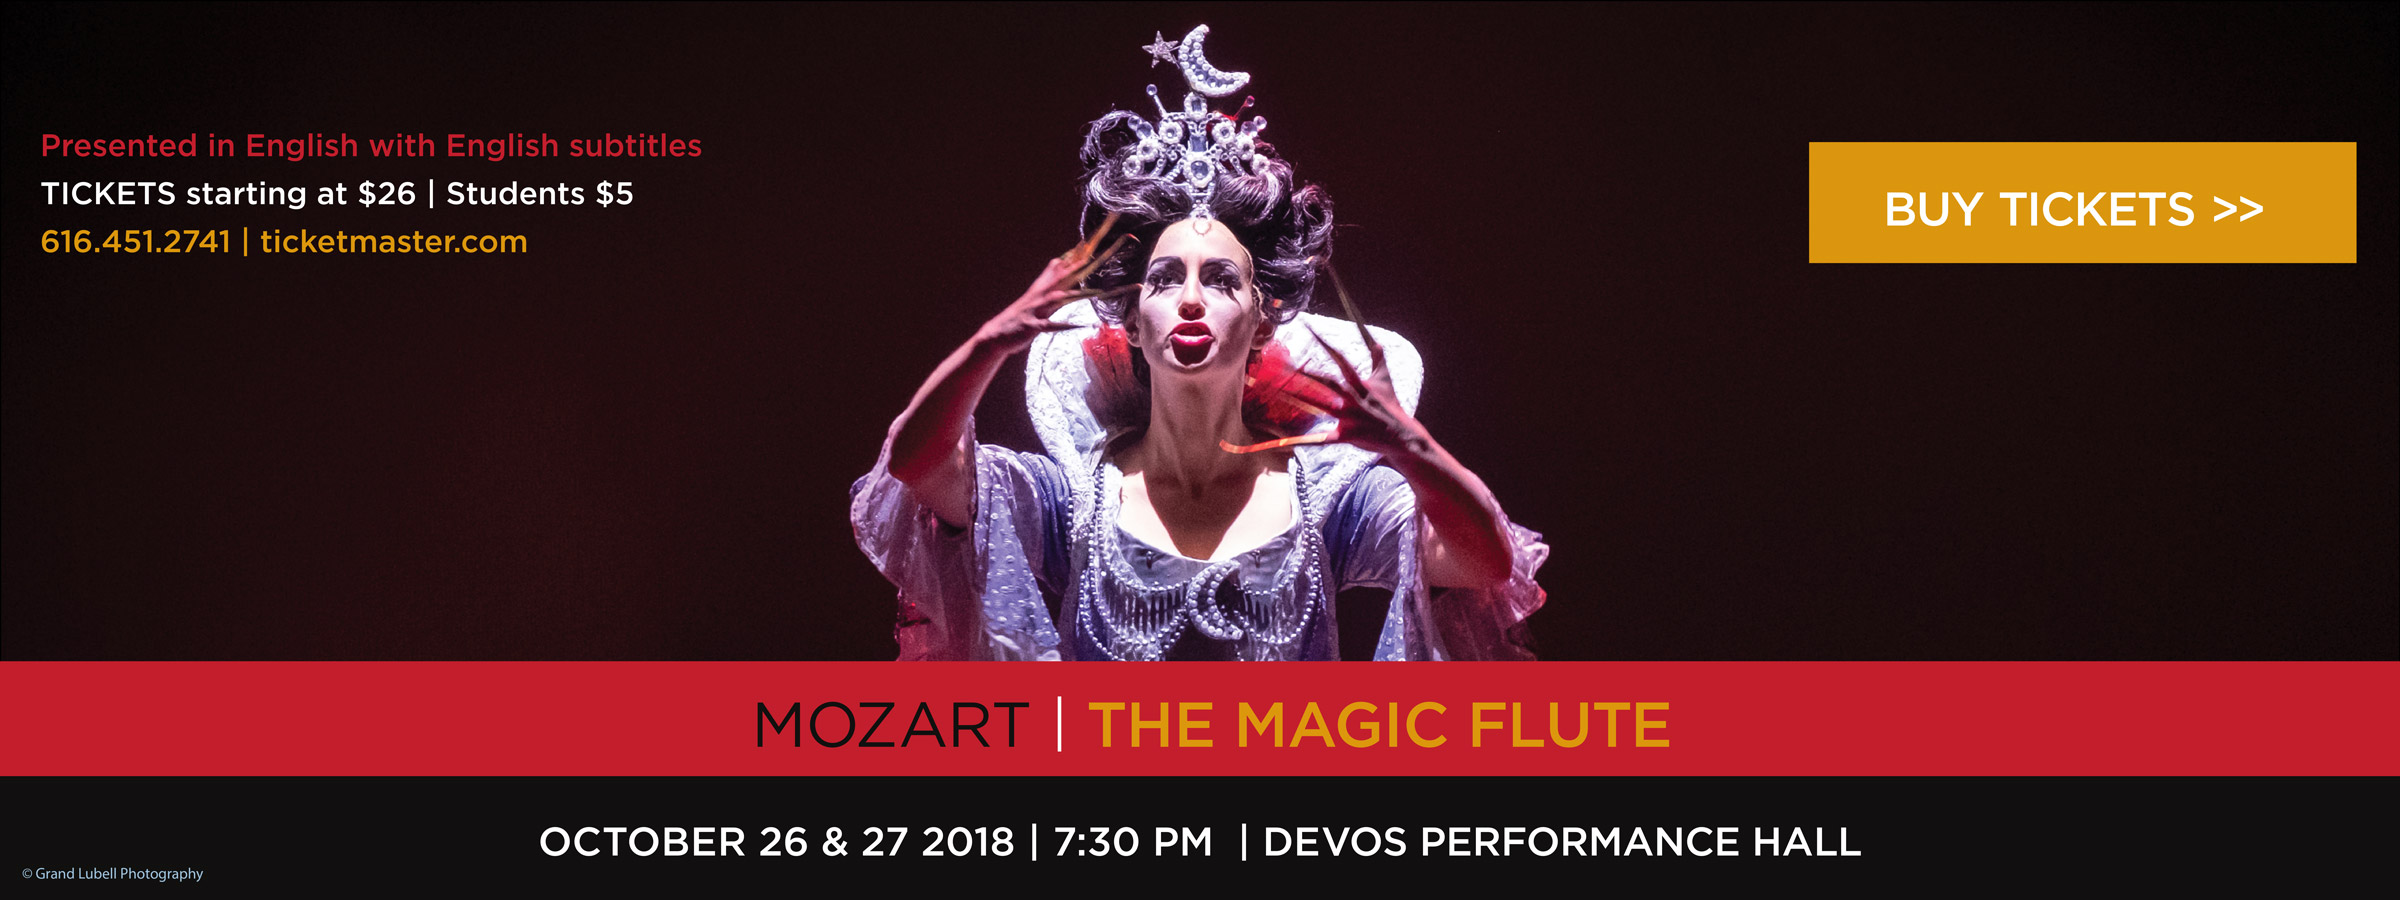 Buy tickets for Motzart's the Magic Flute October 26 & 27 at DeVos Performance Hall - 7:30 PM - Presented in English with English subtitles, tickets starting at $26, Students $5, 616.451.2741, ticketmaster.com